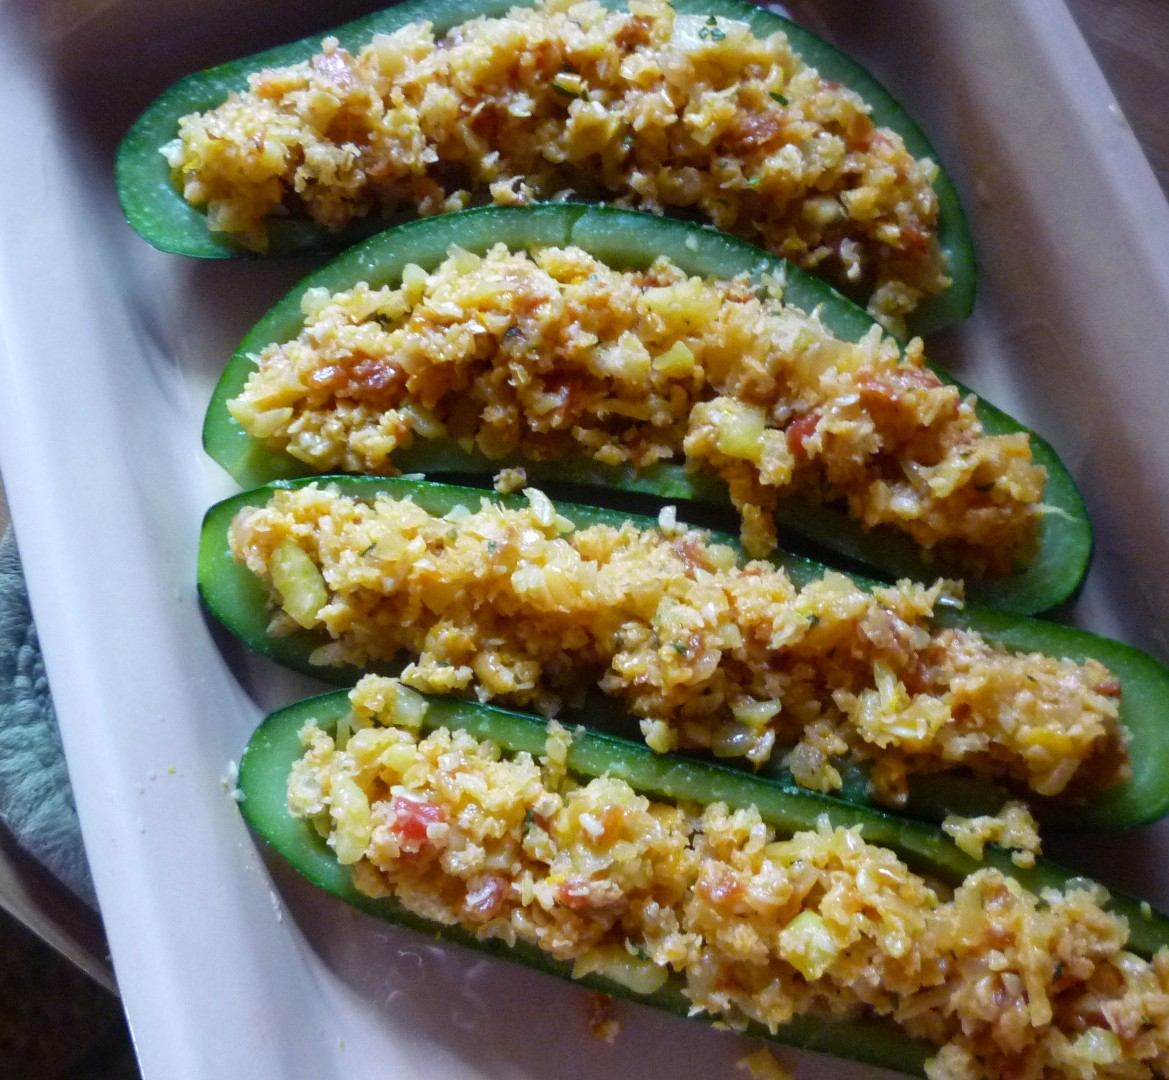 For Love of the TableRoasted Stuffed Zucchini